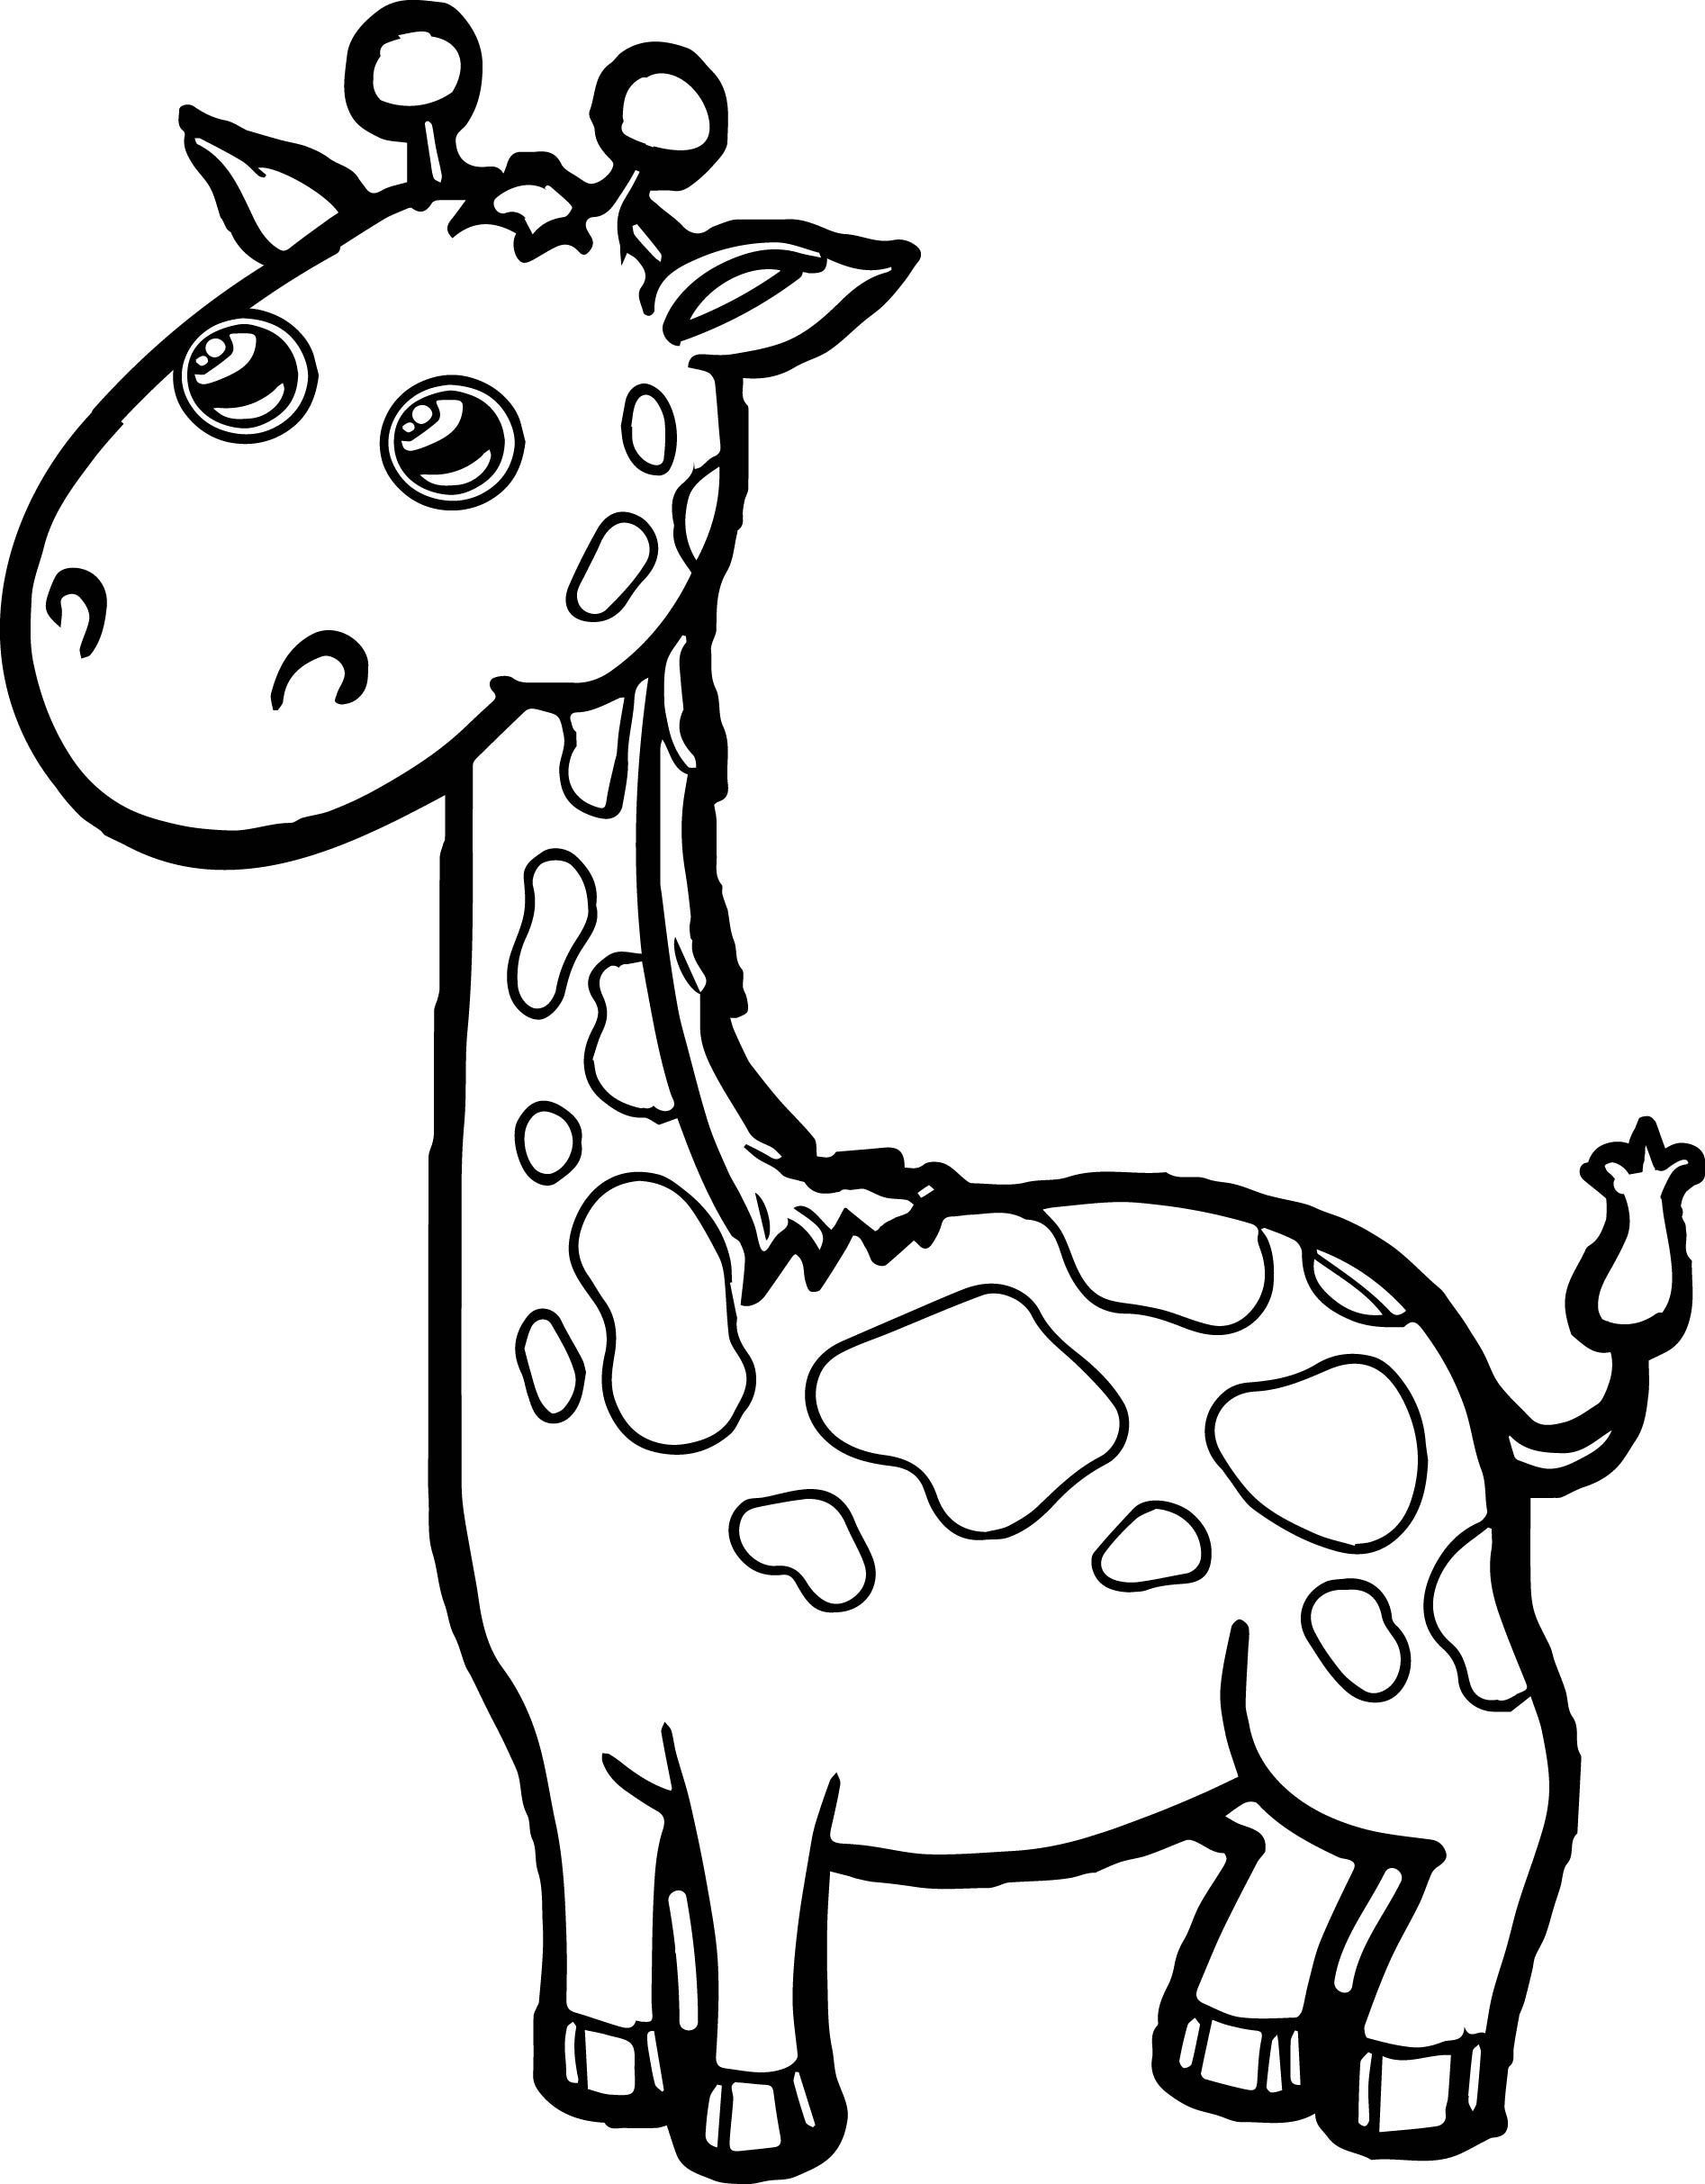 zoo animals coloring pictures zoo animals coloring pages best coloring pages for kids animals zoo pictures coloring